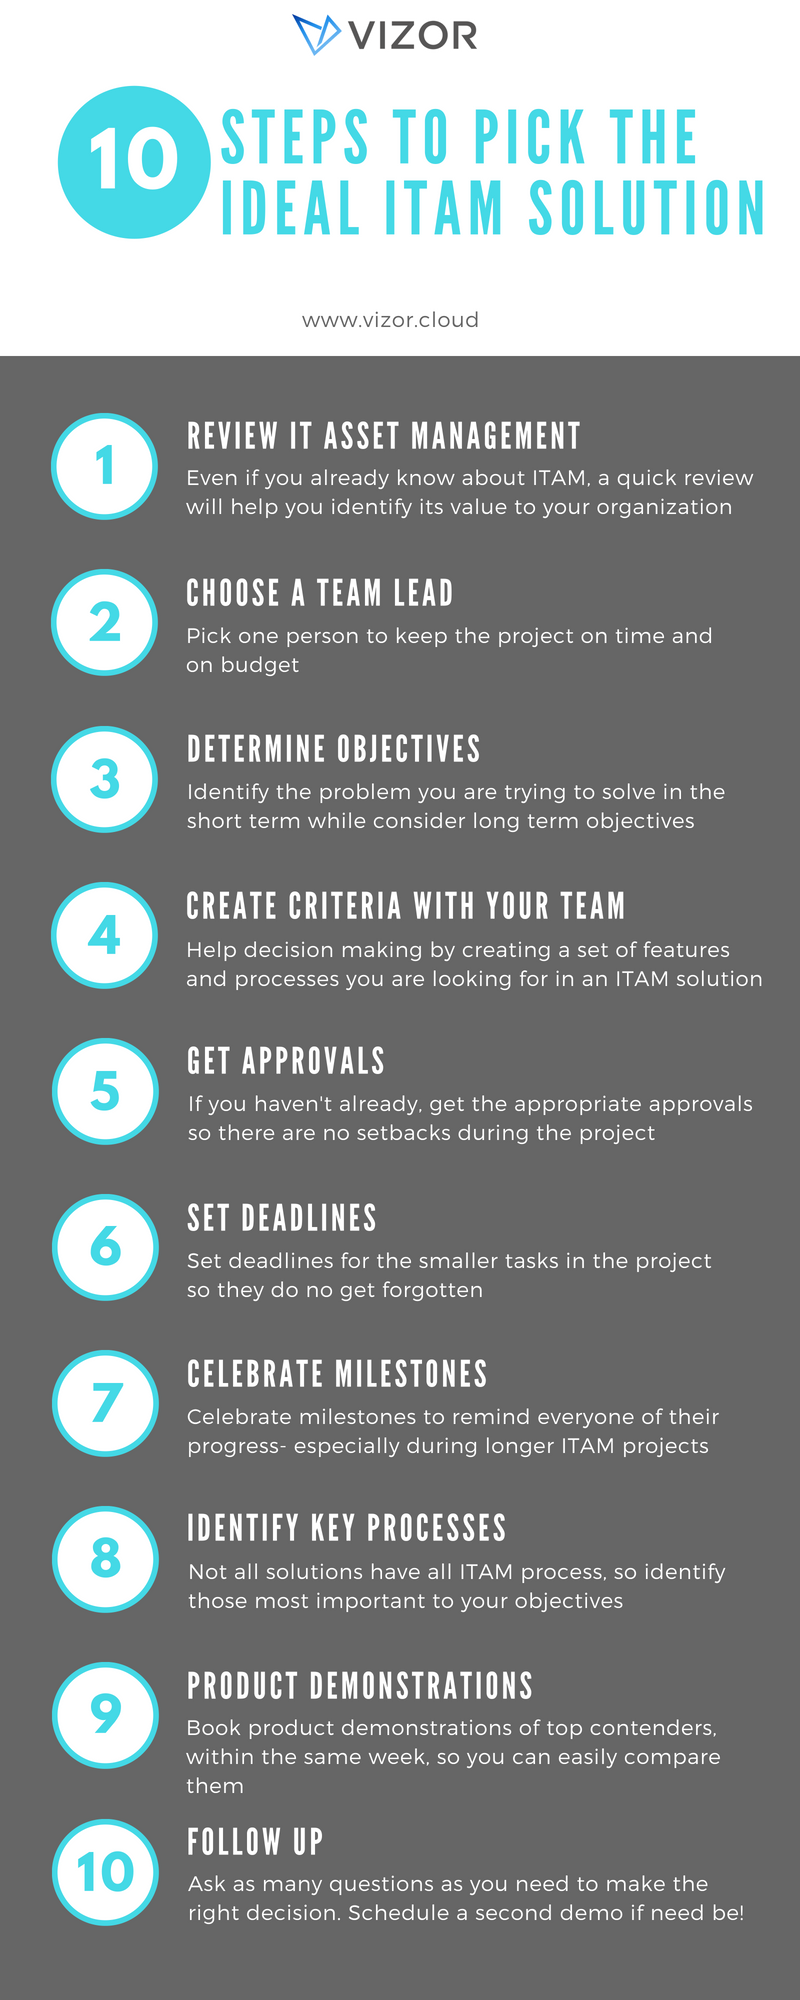 10 steps to pick the ideal ITAM solution